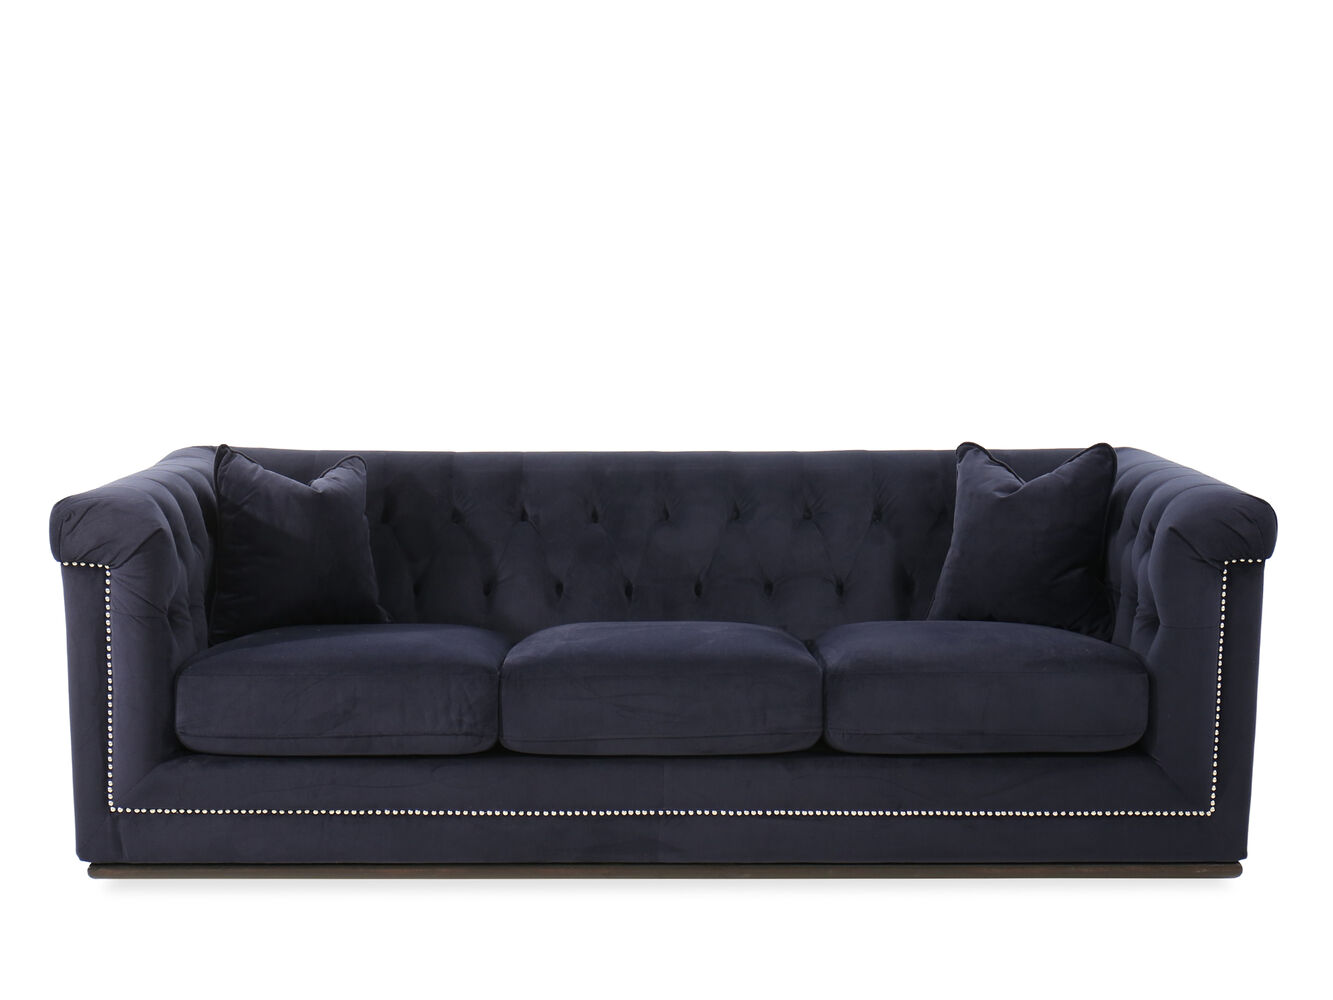 Button tufted velvet 93 sofa in blue mathis brothers for Button tufted velvet chaise settee